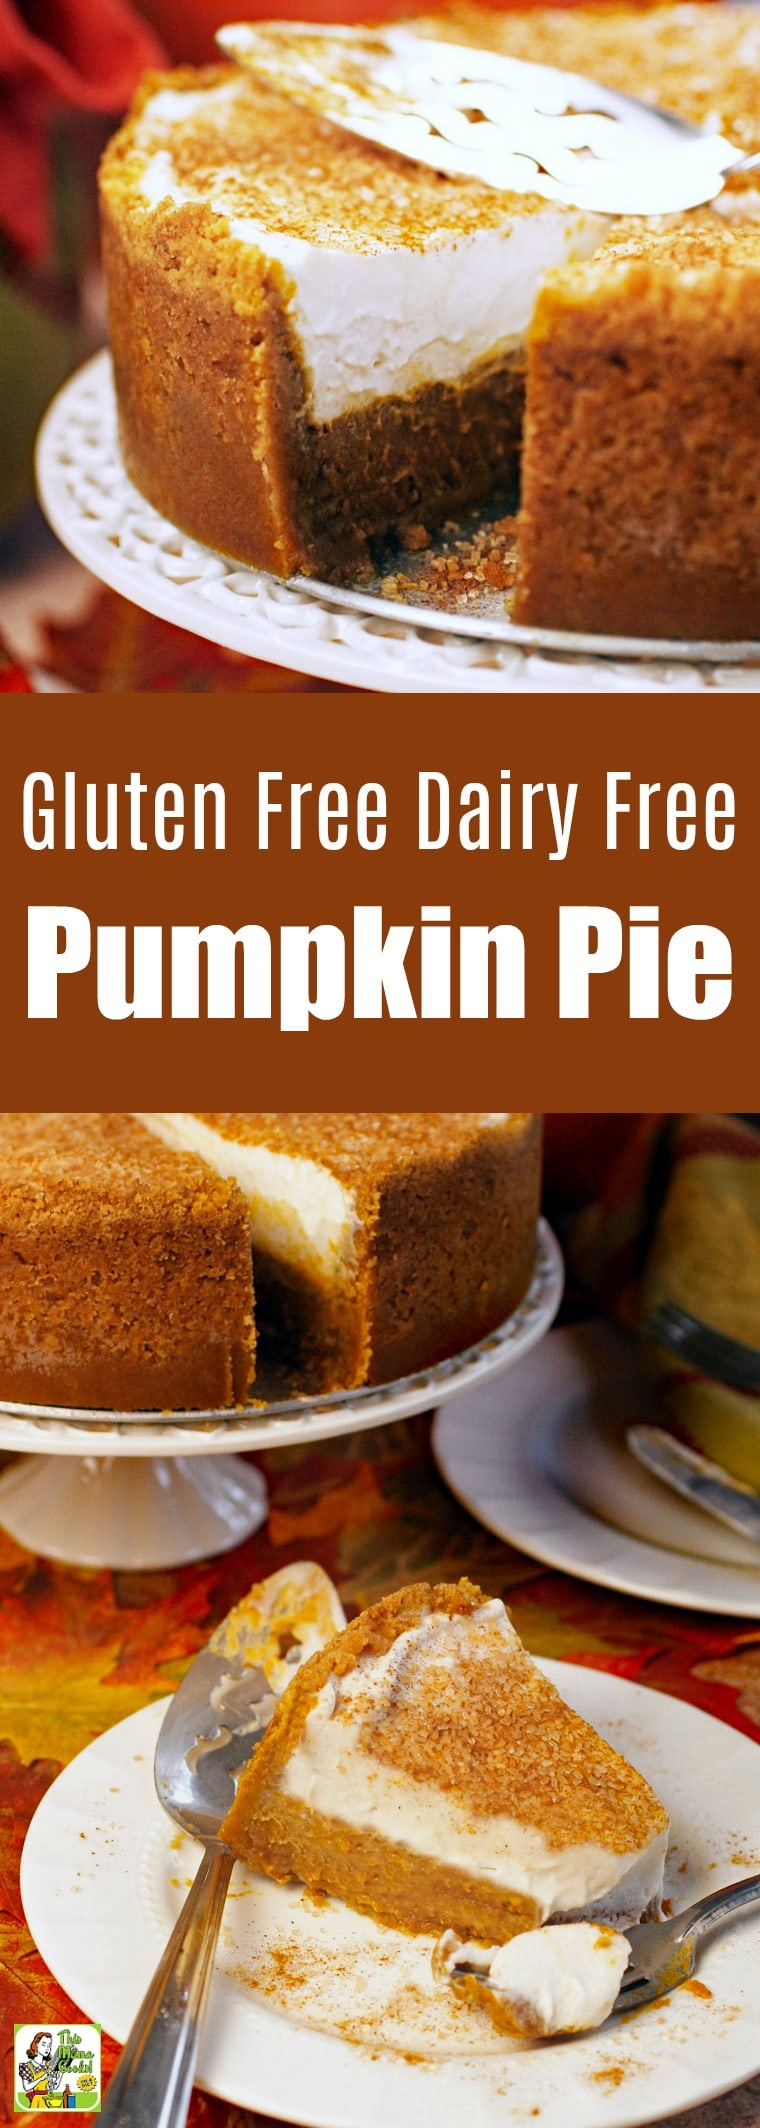 This Gluten Free Dairy Free Pumpkin Pie is a must serve Thanksgiving dessert. Dairy-free pumpkin pie made with coconut cream & gluten-free cookie crust. Tips on making it into a sugar-free & a vegan pumpkin pie recipe. #recipes #easy #recipeoftheday #glutenfree #easyrecipe #easyrecipes #glutenfreerecipes #pumpkindessert #pumpkinrecipe #pumpkin #pumpkinspice #halloween #thanksgiving #pie #baking #dairyfree #sugarfree #desserts #dessertrecipes #veganfood #vegan #veganrecipes #vegandesserts